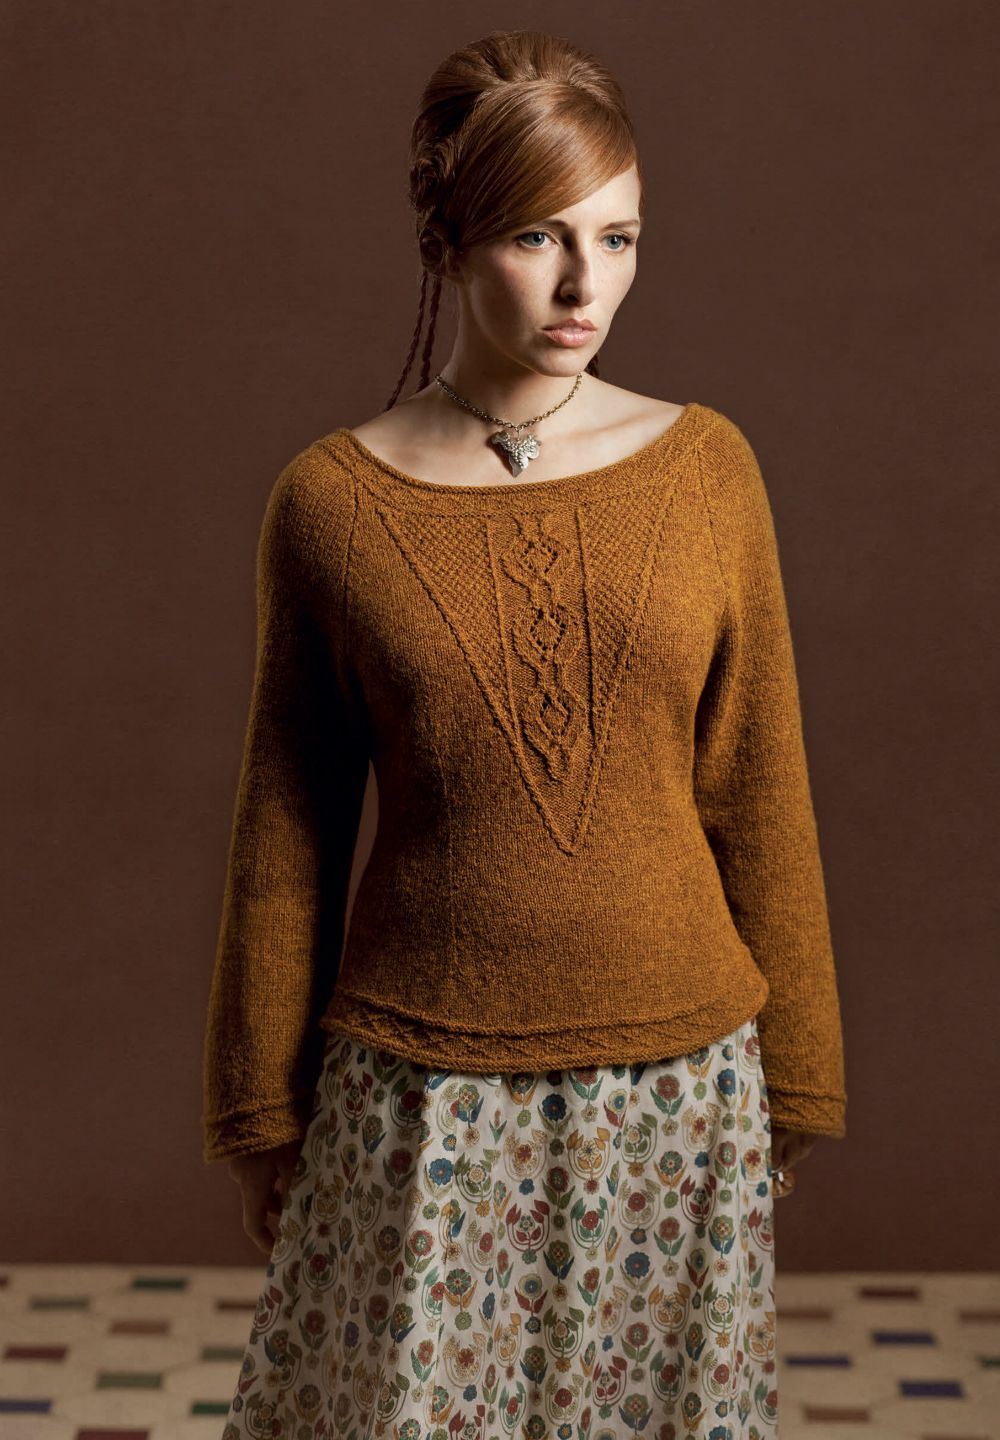 3deea3b0f87d0b Elizabeth the First Sweater by Alice Starmore (Free Pattern) - Craftfoxes